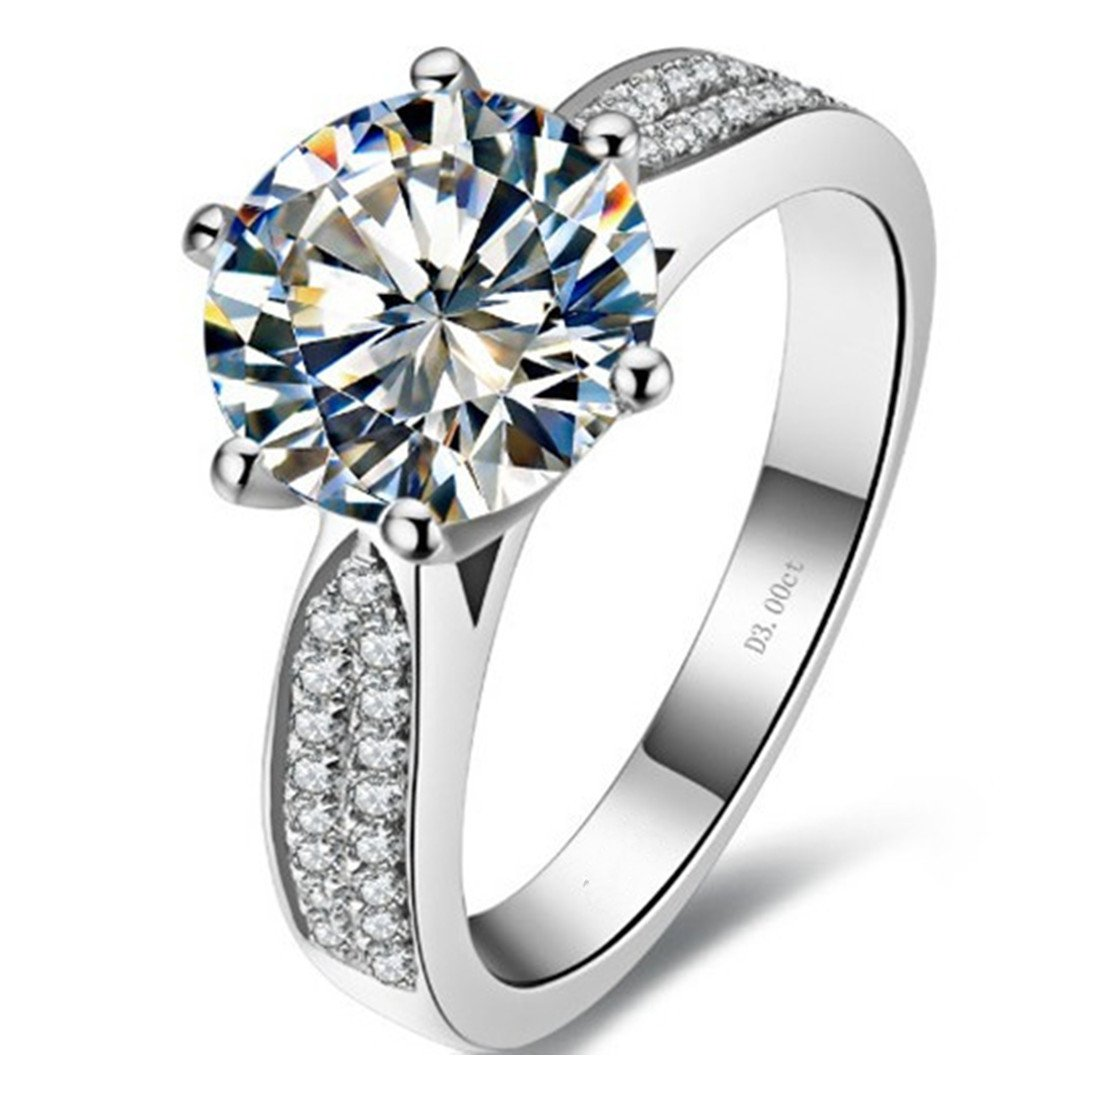 3CT Star Brand Sterling Silver Anniversary Ring for Wife NSCD Simulated Diamond Micro Paved